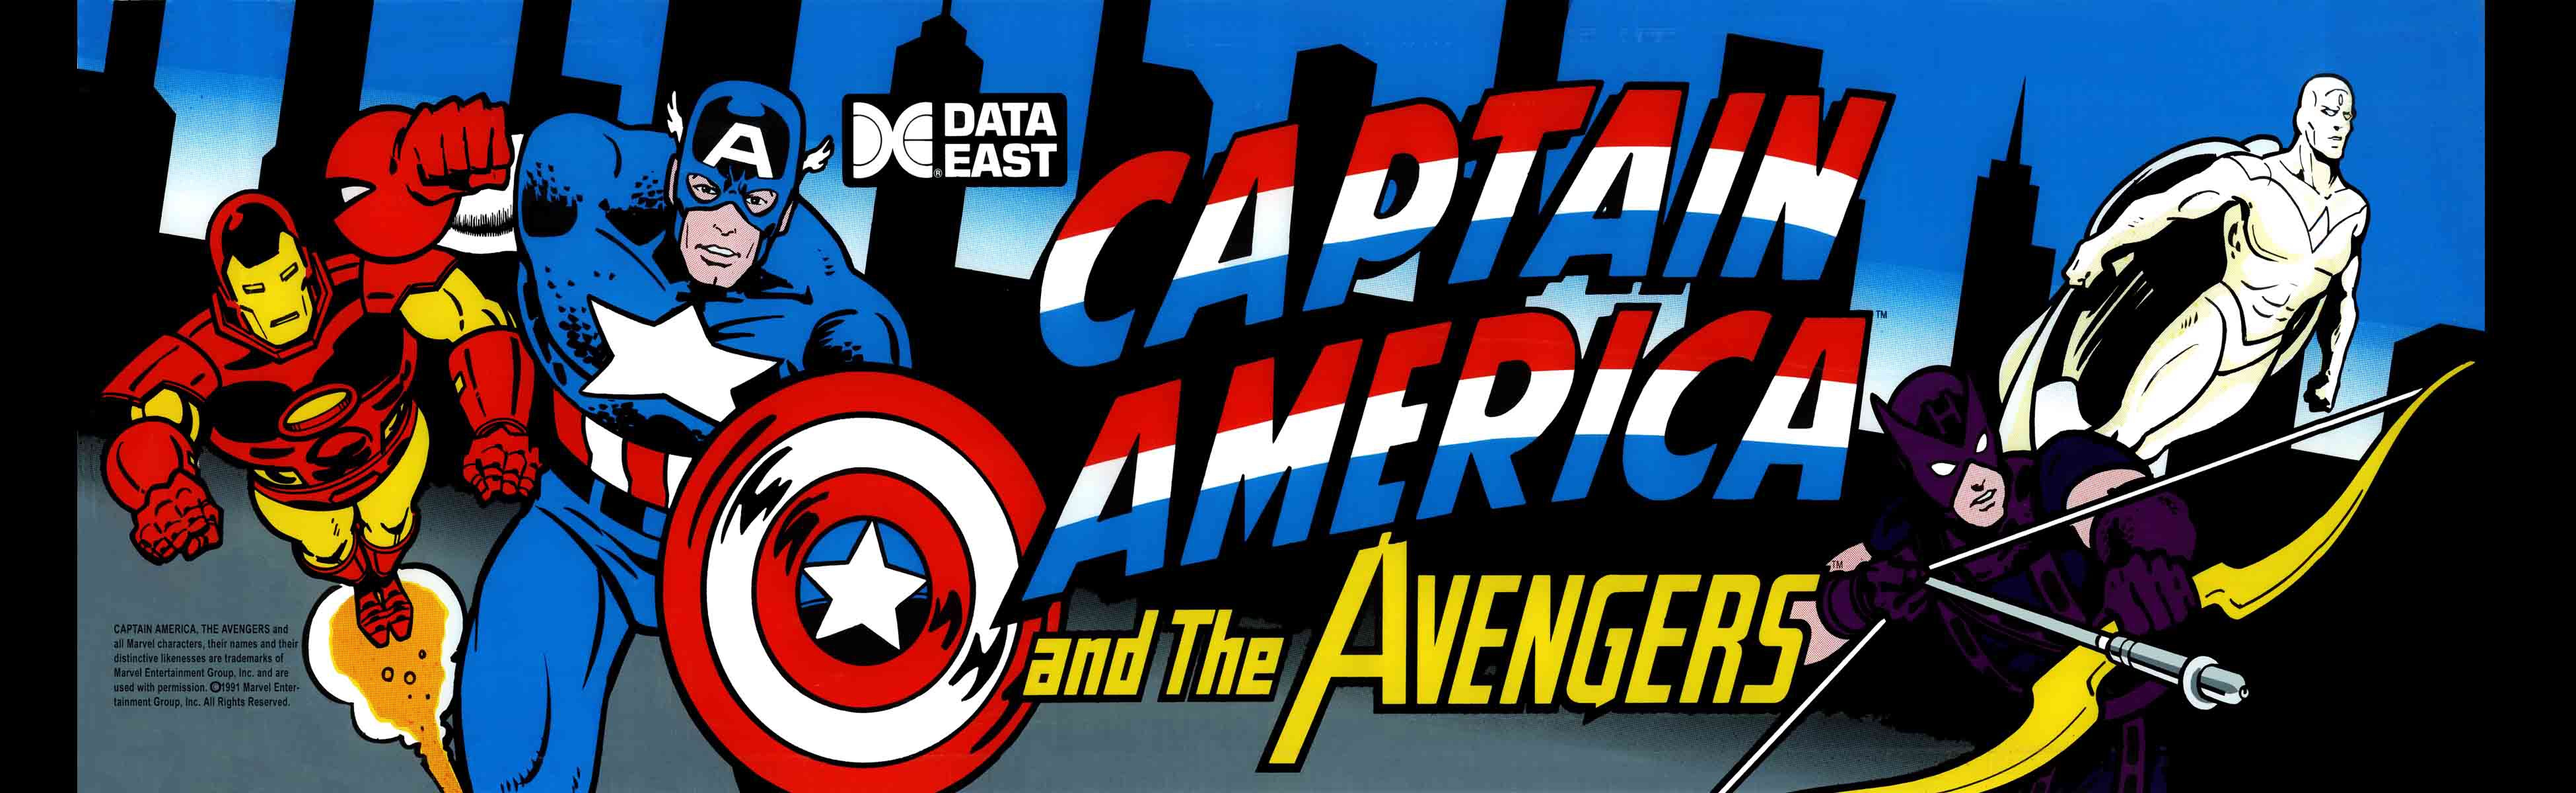 A World of Games: Captain America and the Avengers